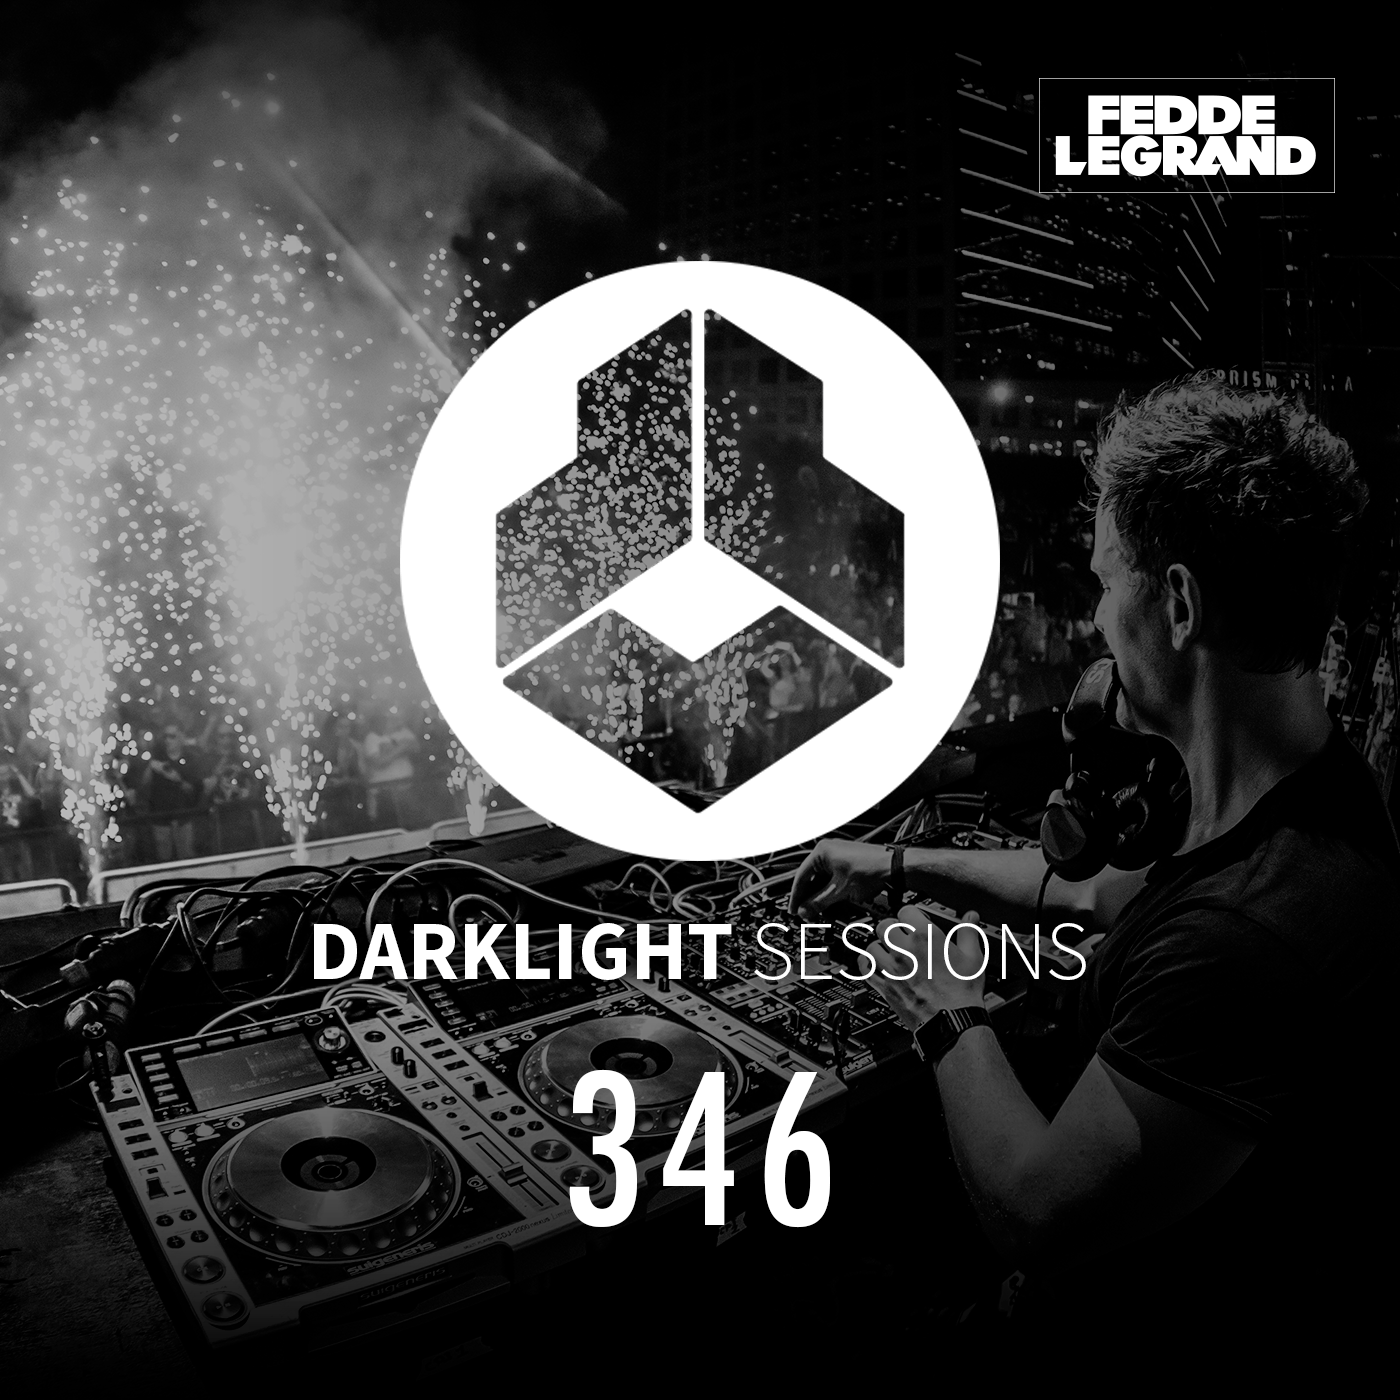 Darklight Sessions 346